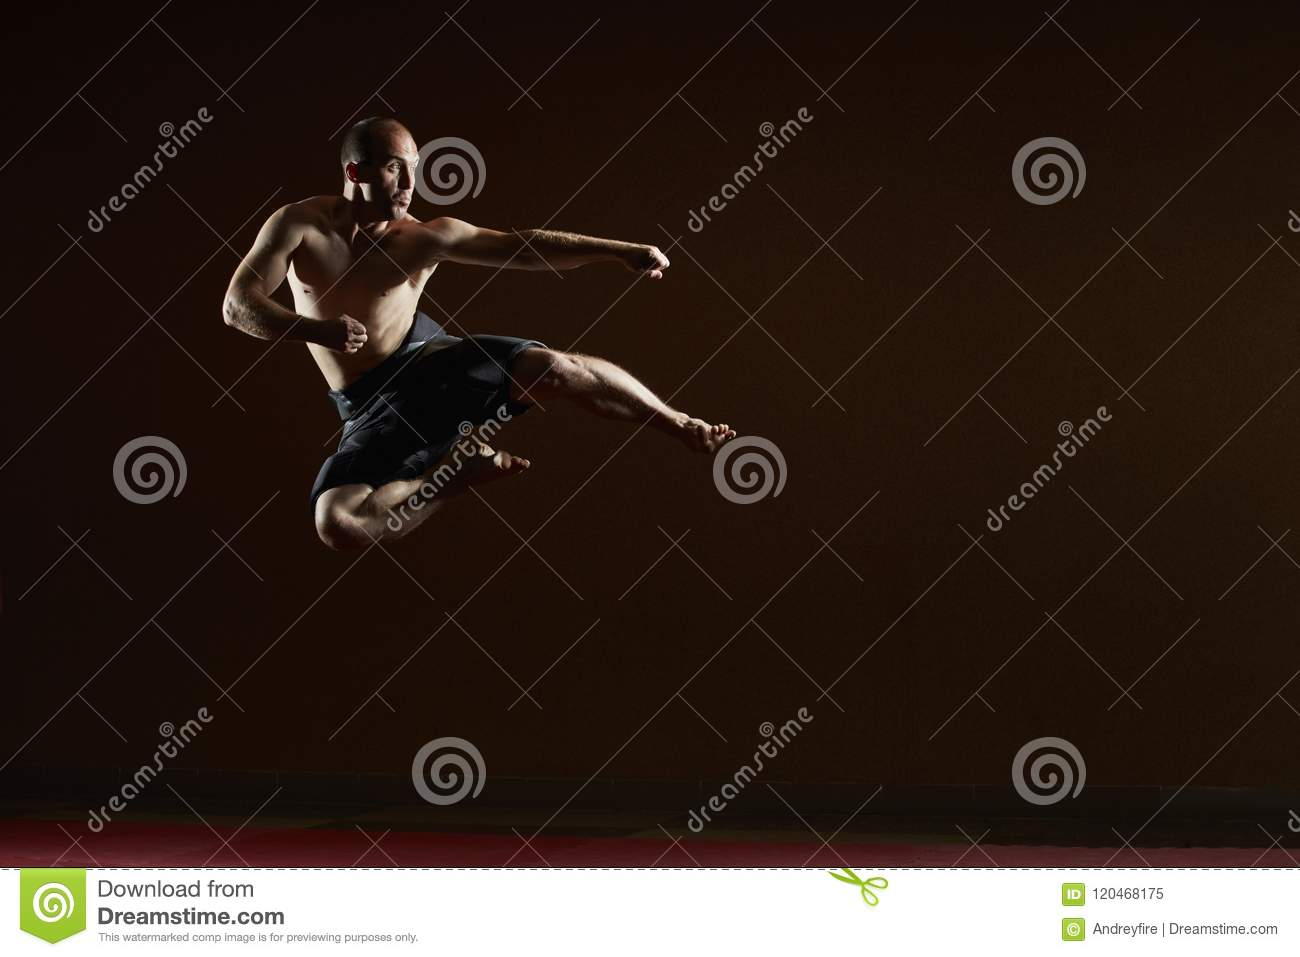 The man beats a kick in the jump to the side